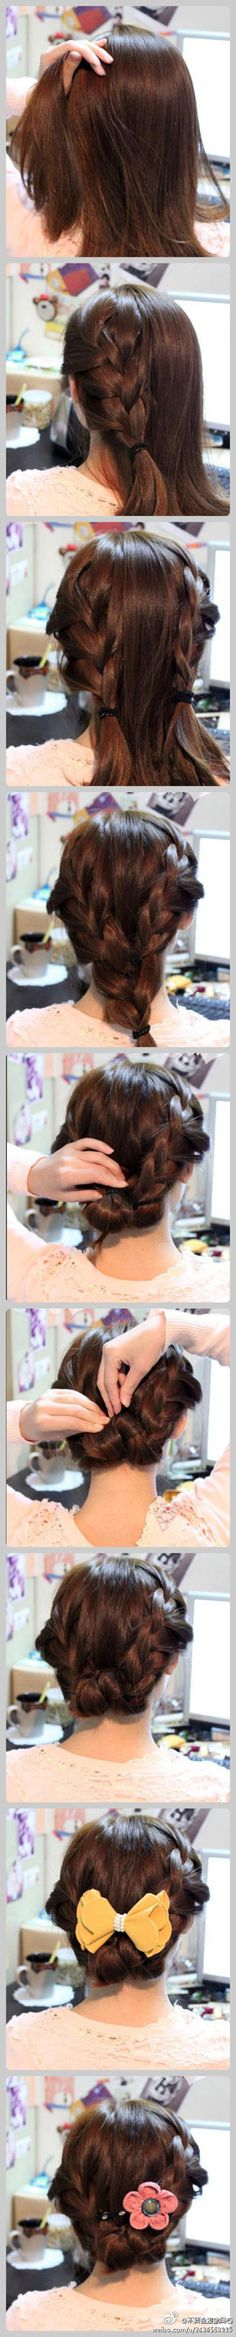 Hairstyle to add a cute bow